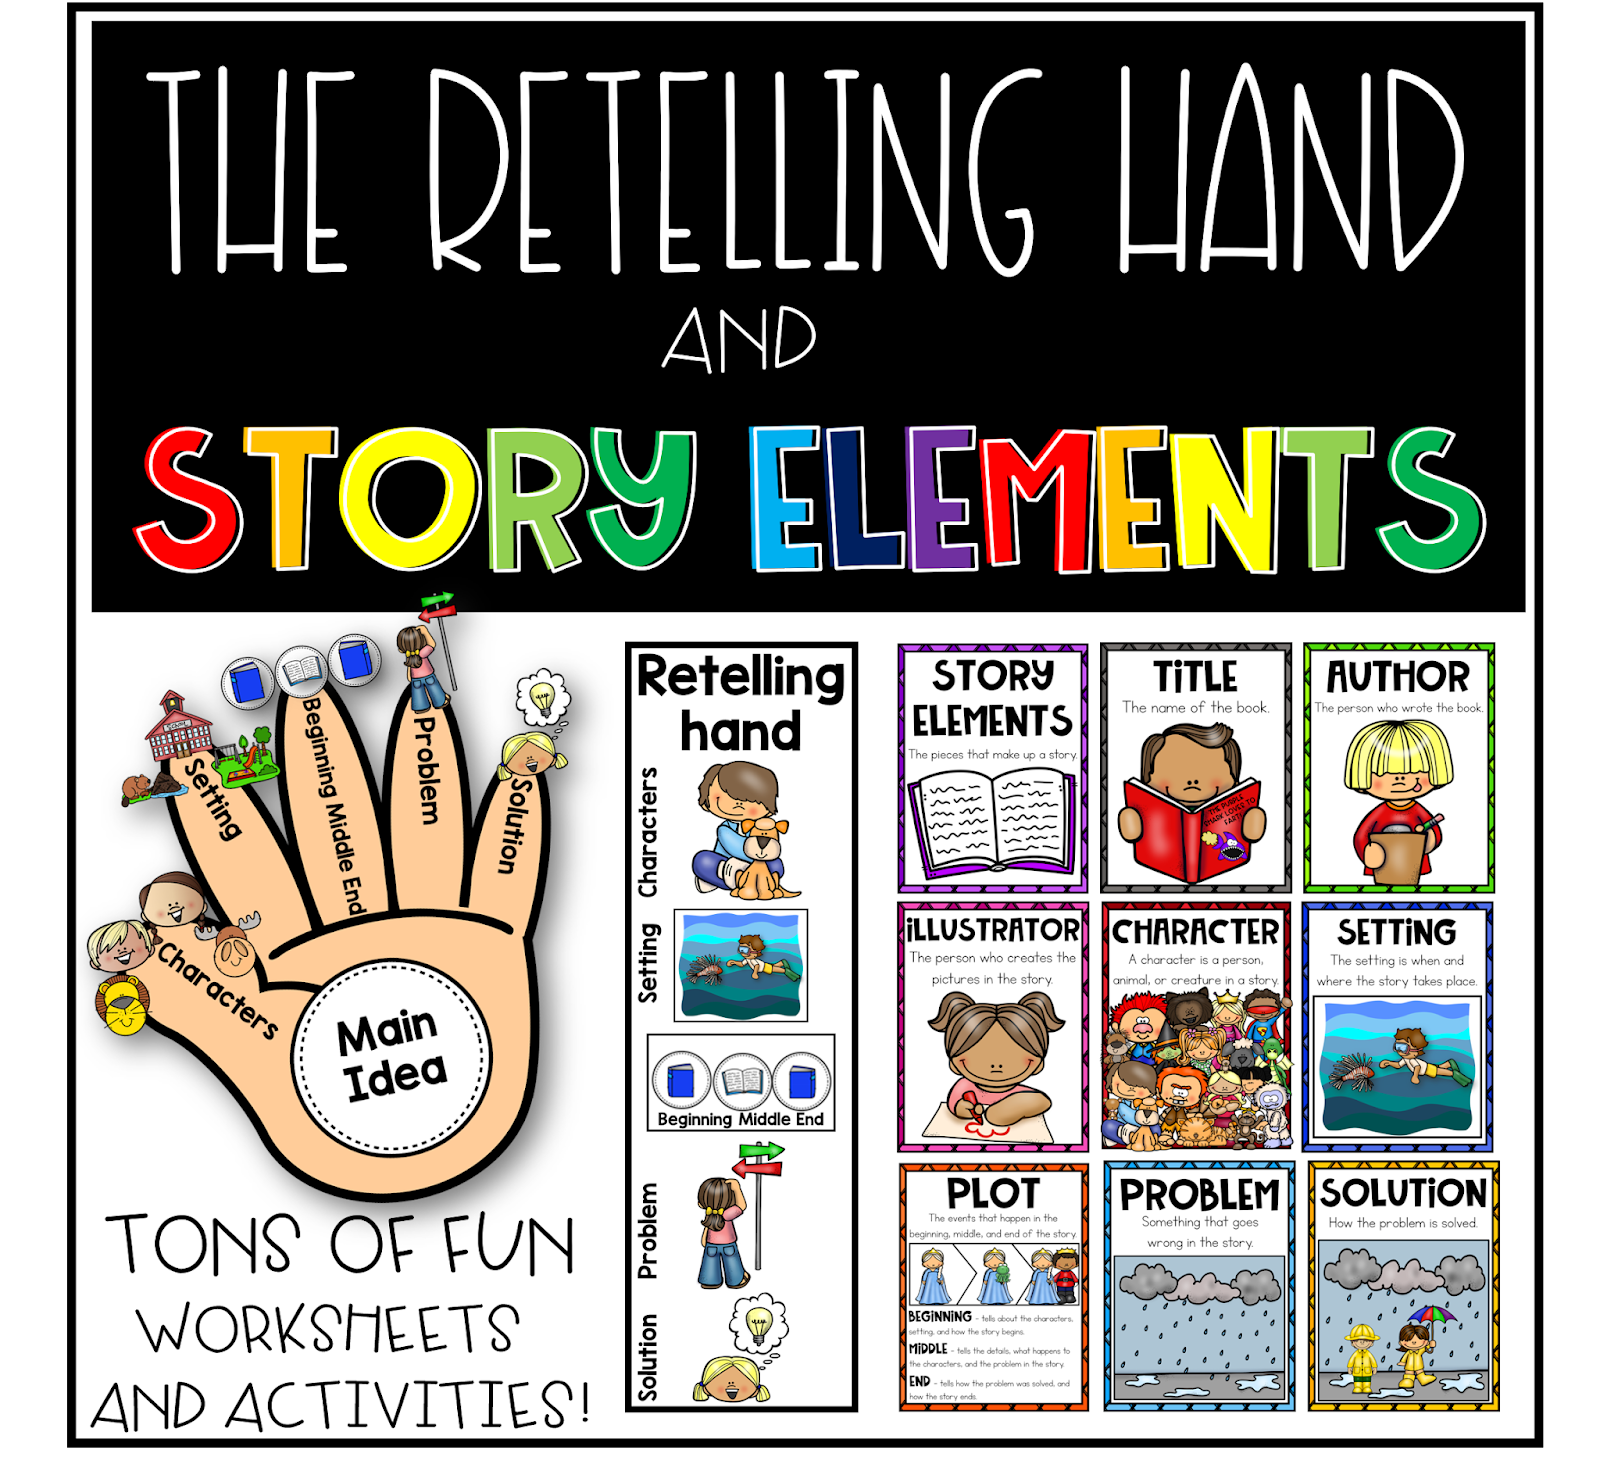 Story Elements Worksheets For 2nd Grade   Printable Worksheets and  Activities for Teachers [ 1482 x 1600 Pixel ]